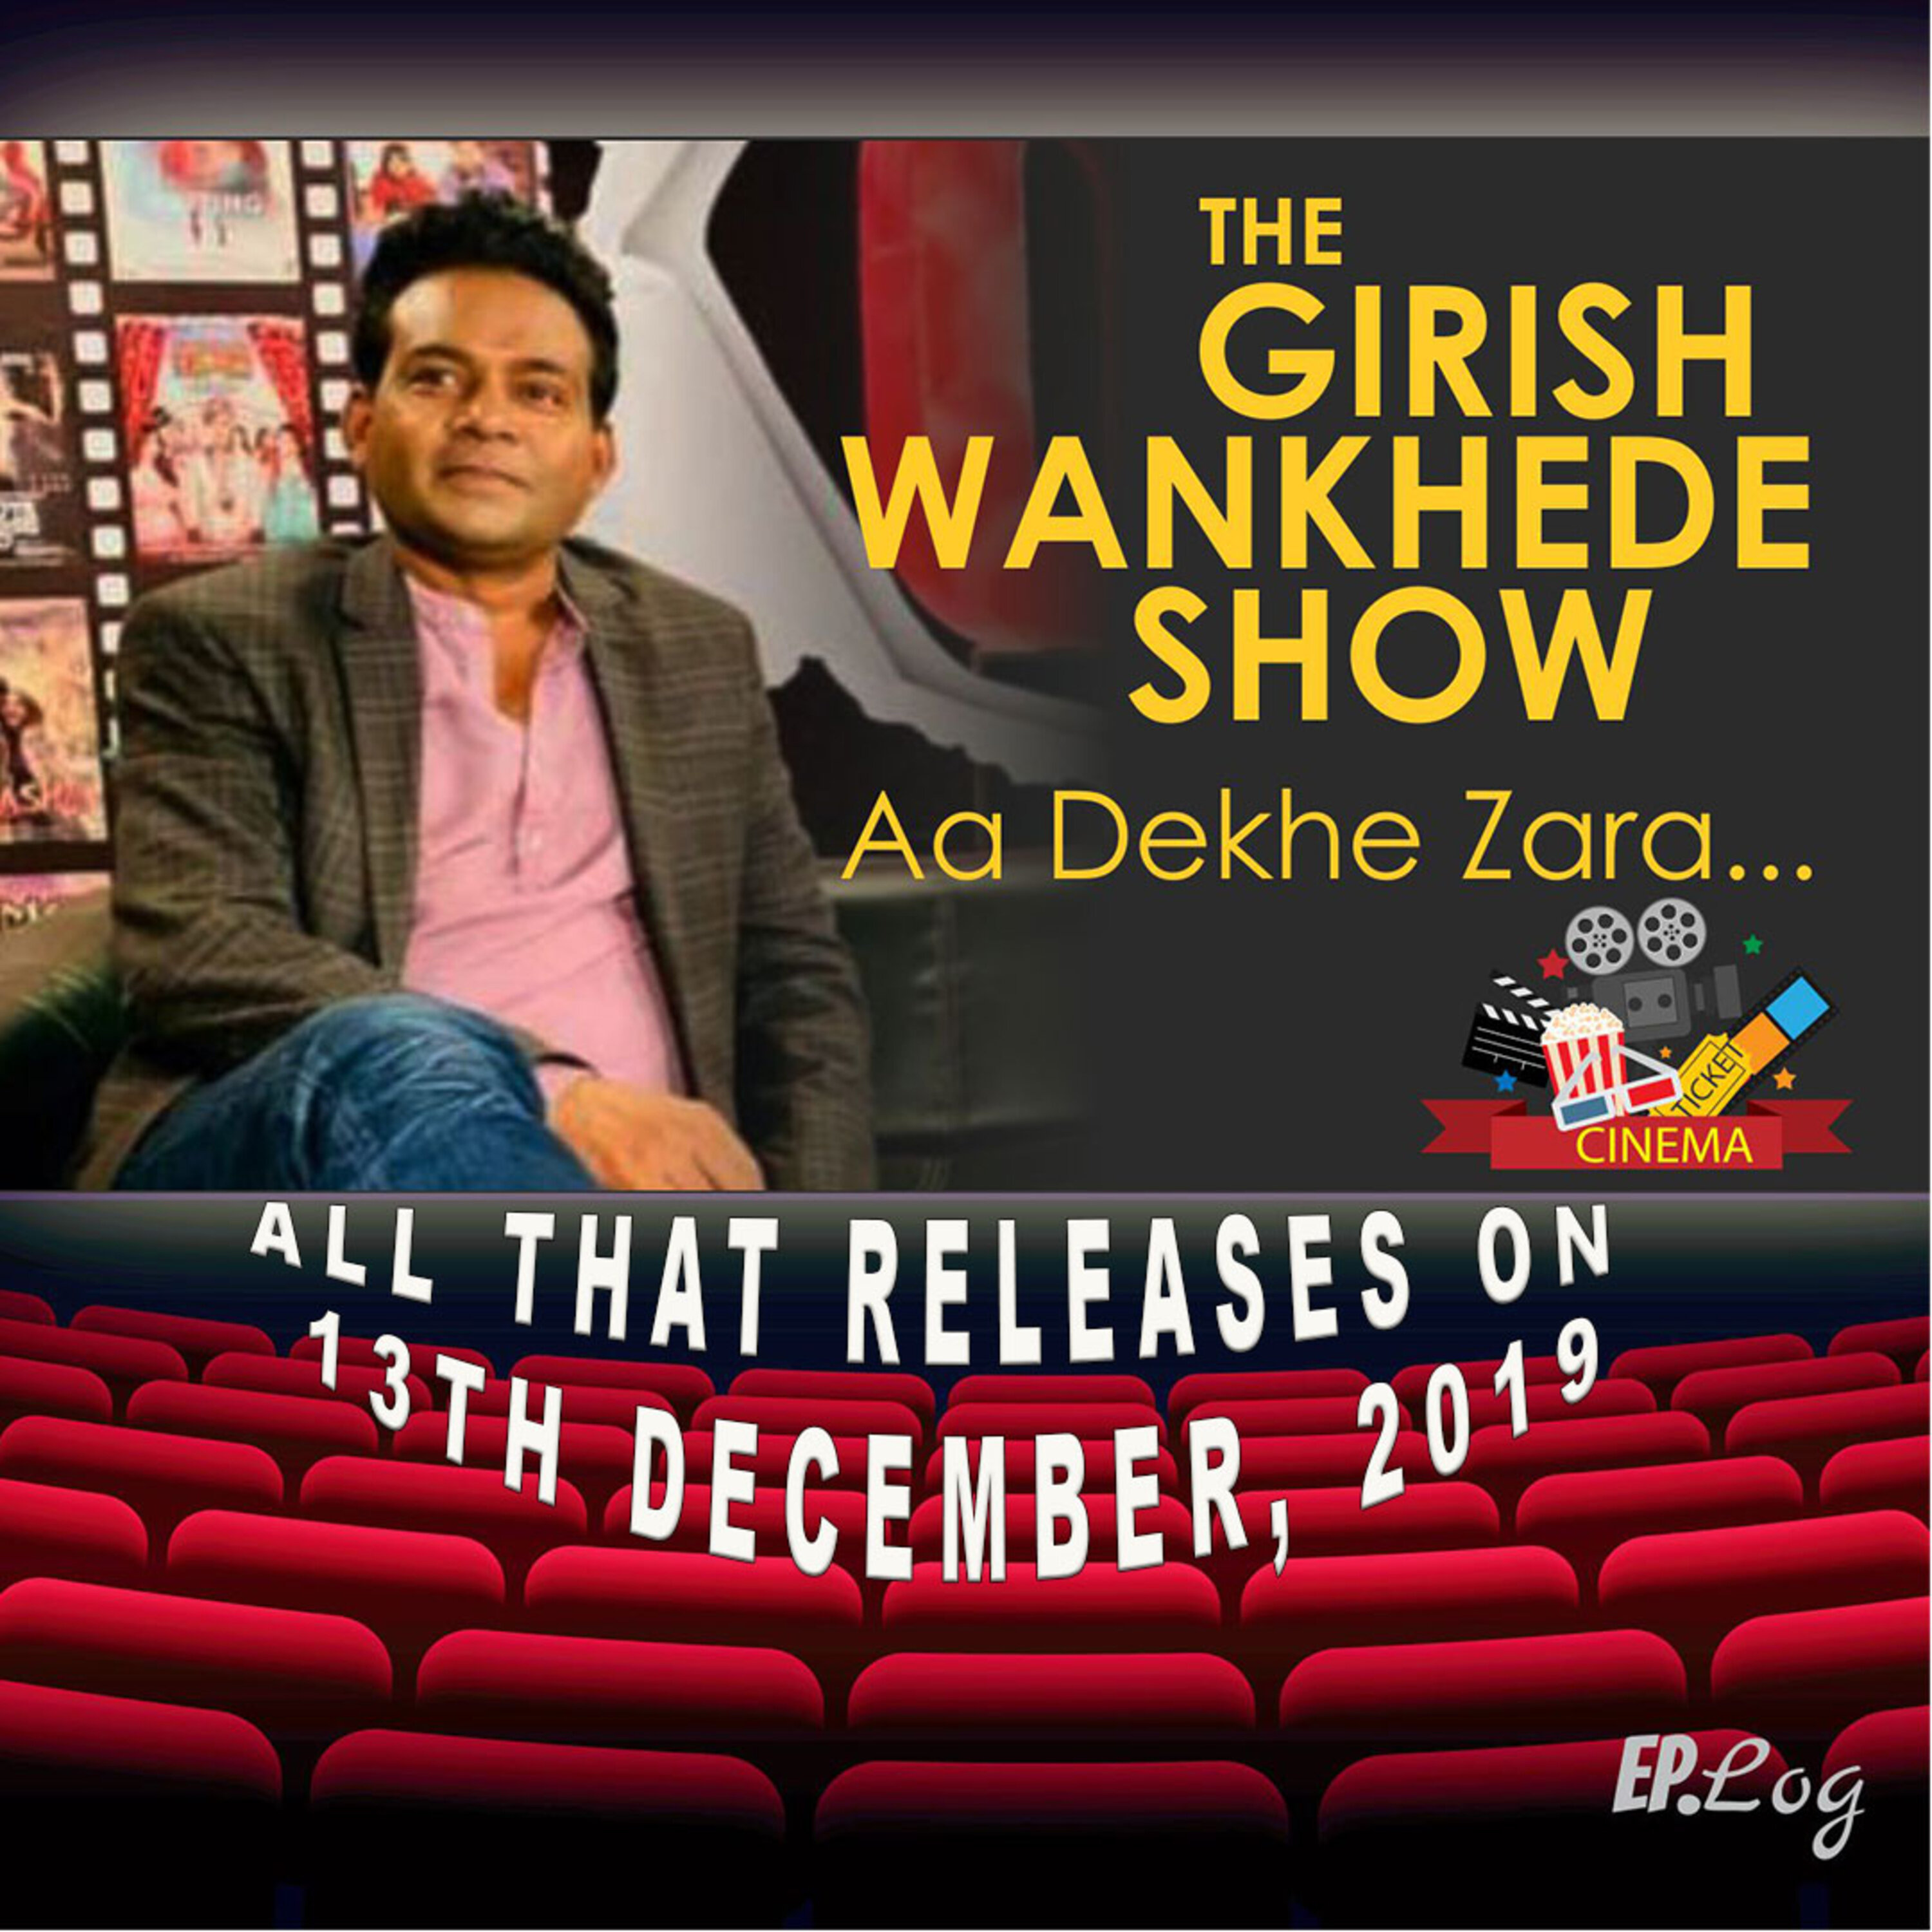 All That Releases on 13th December 2019 & Analysis